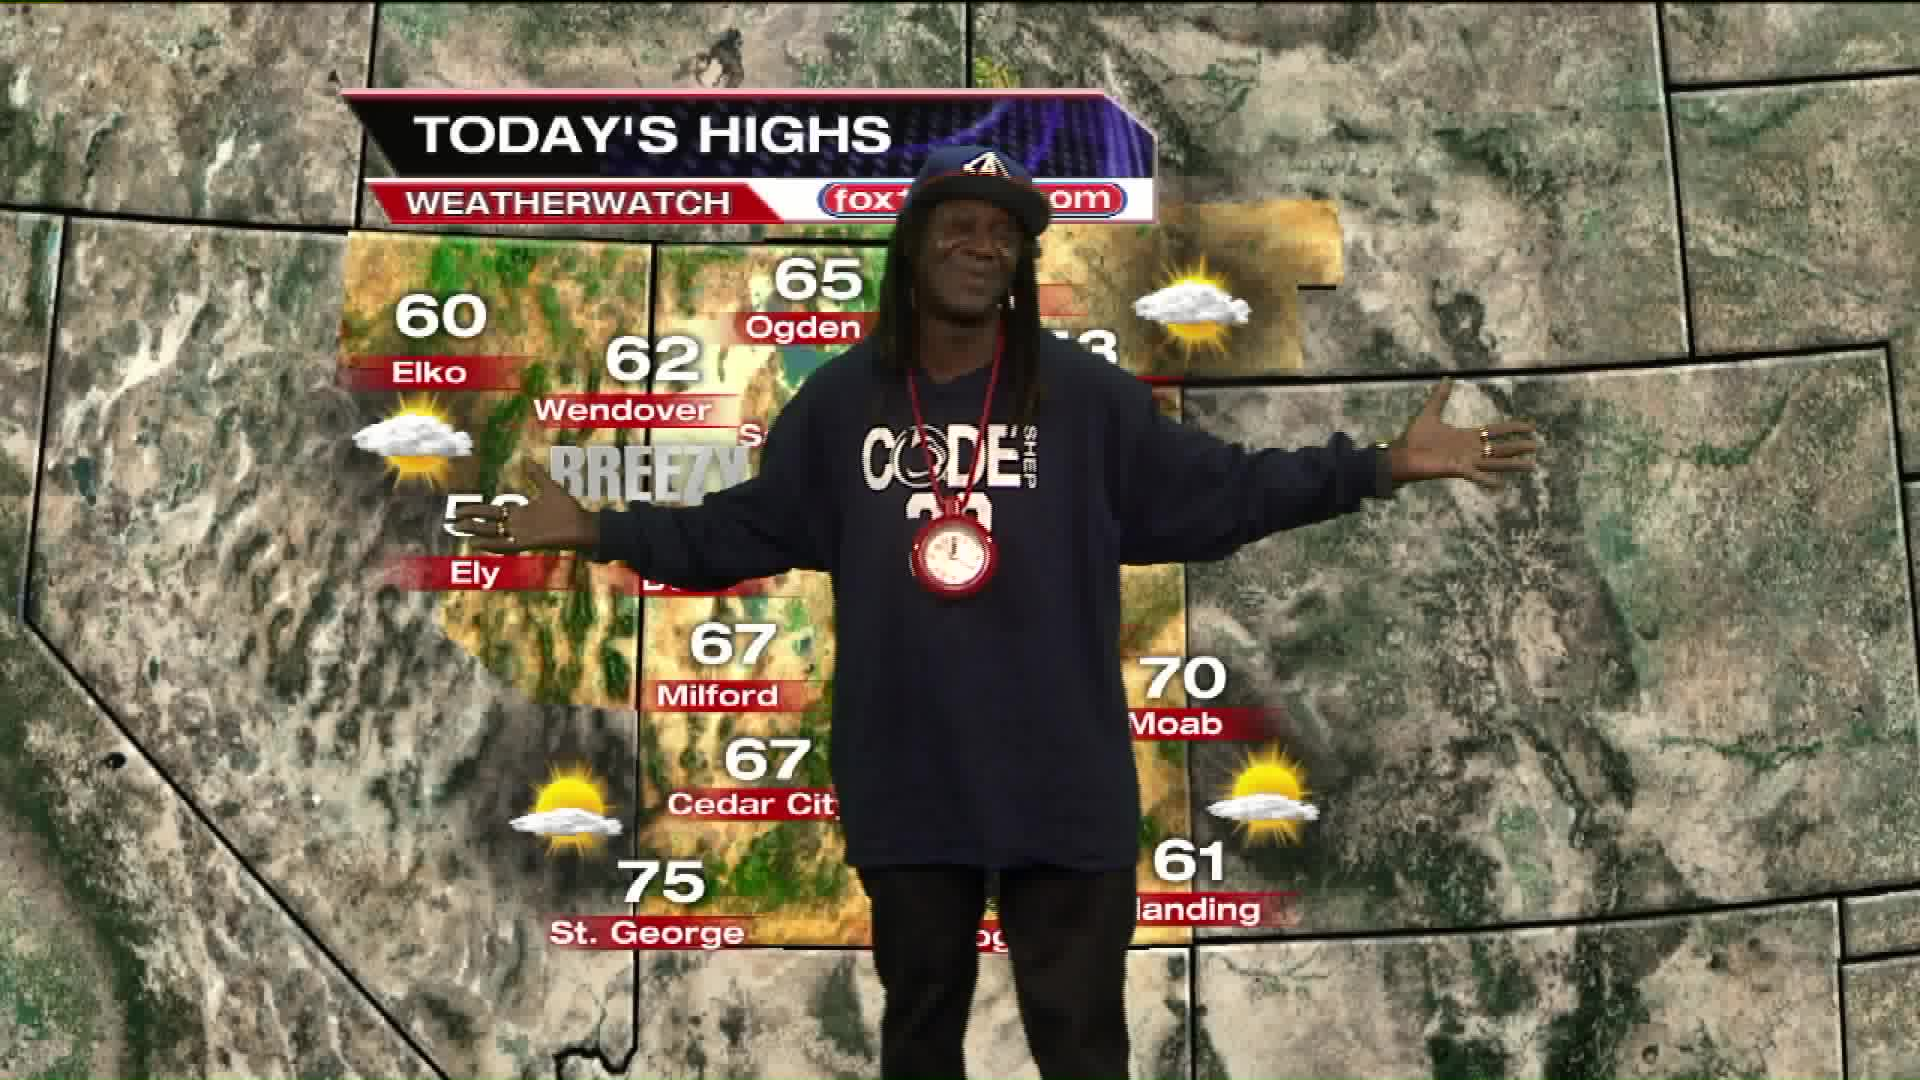 Flavor Flav Delivers Weather Report